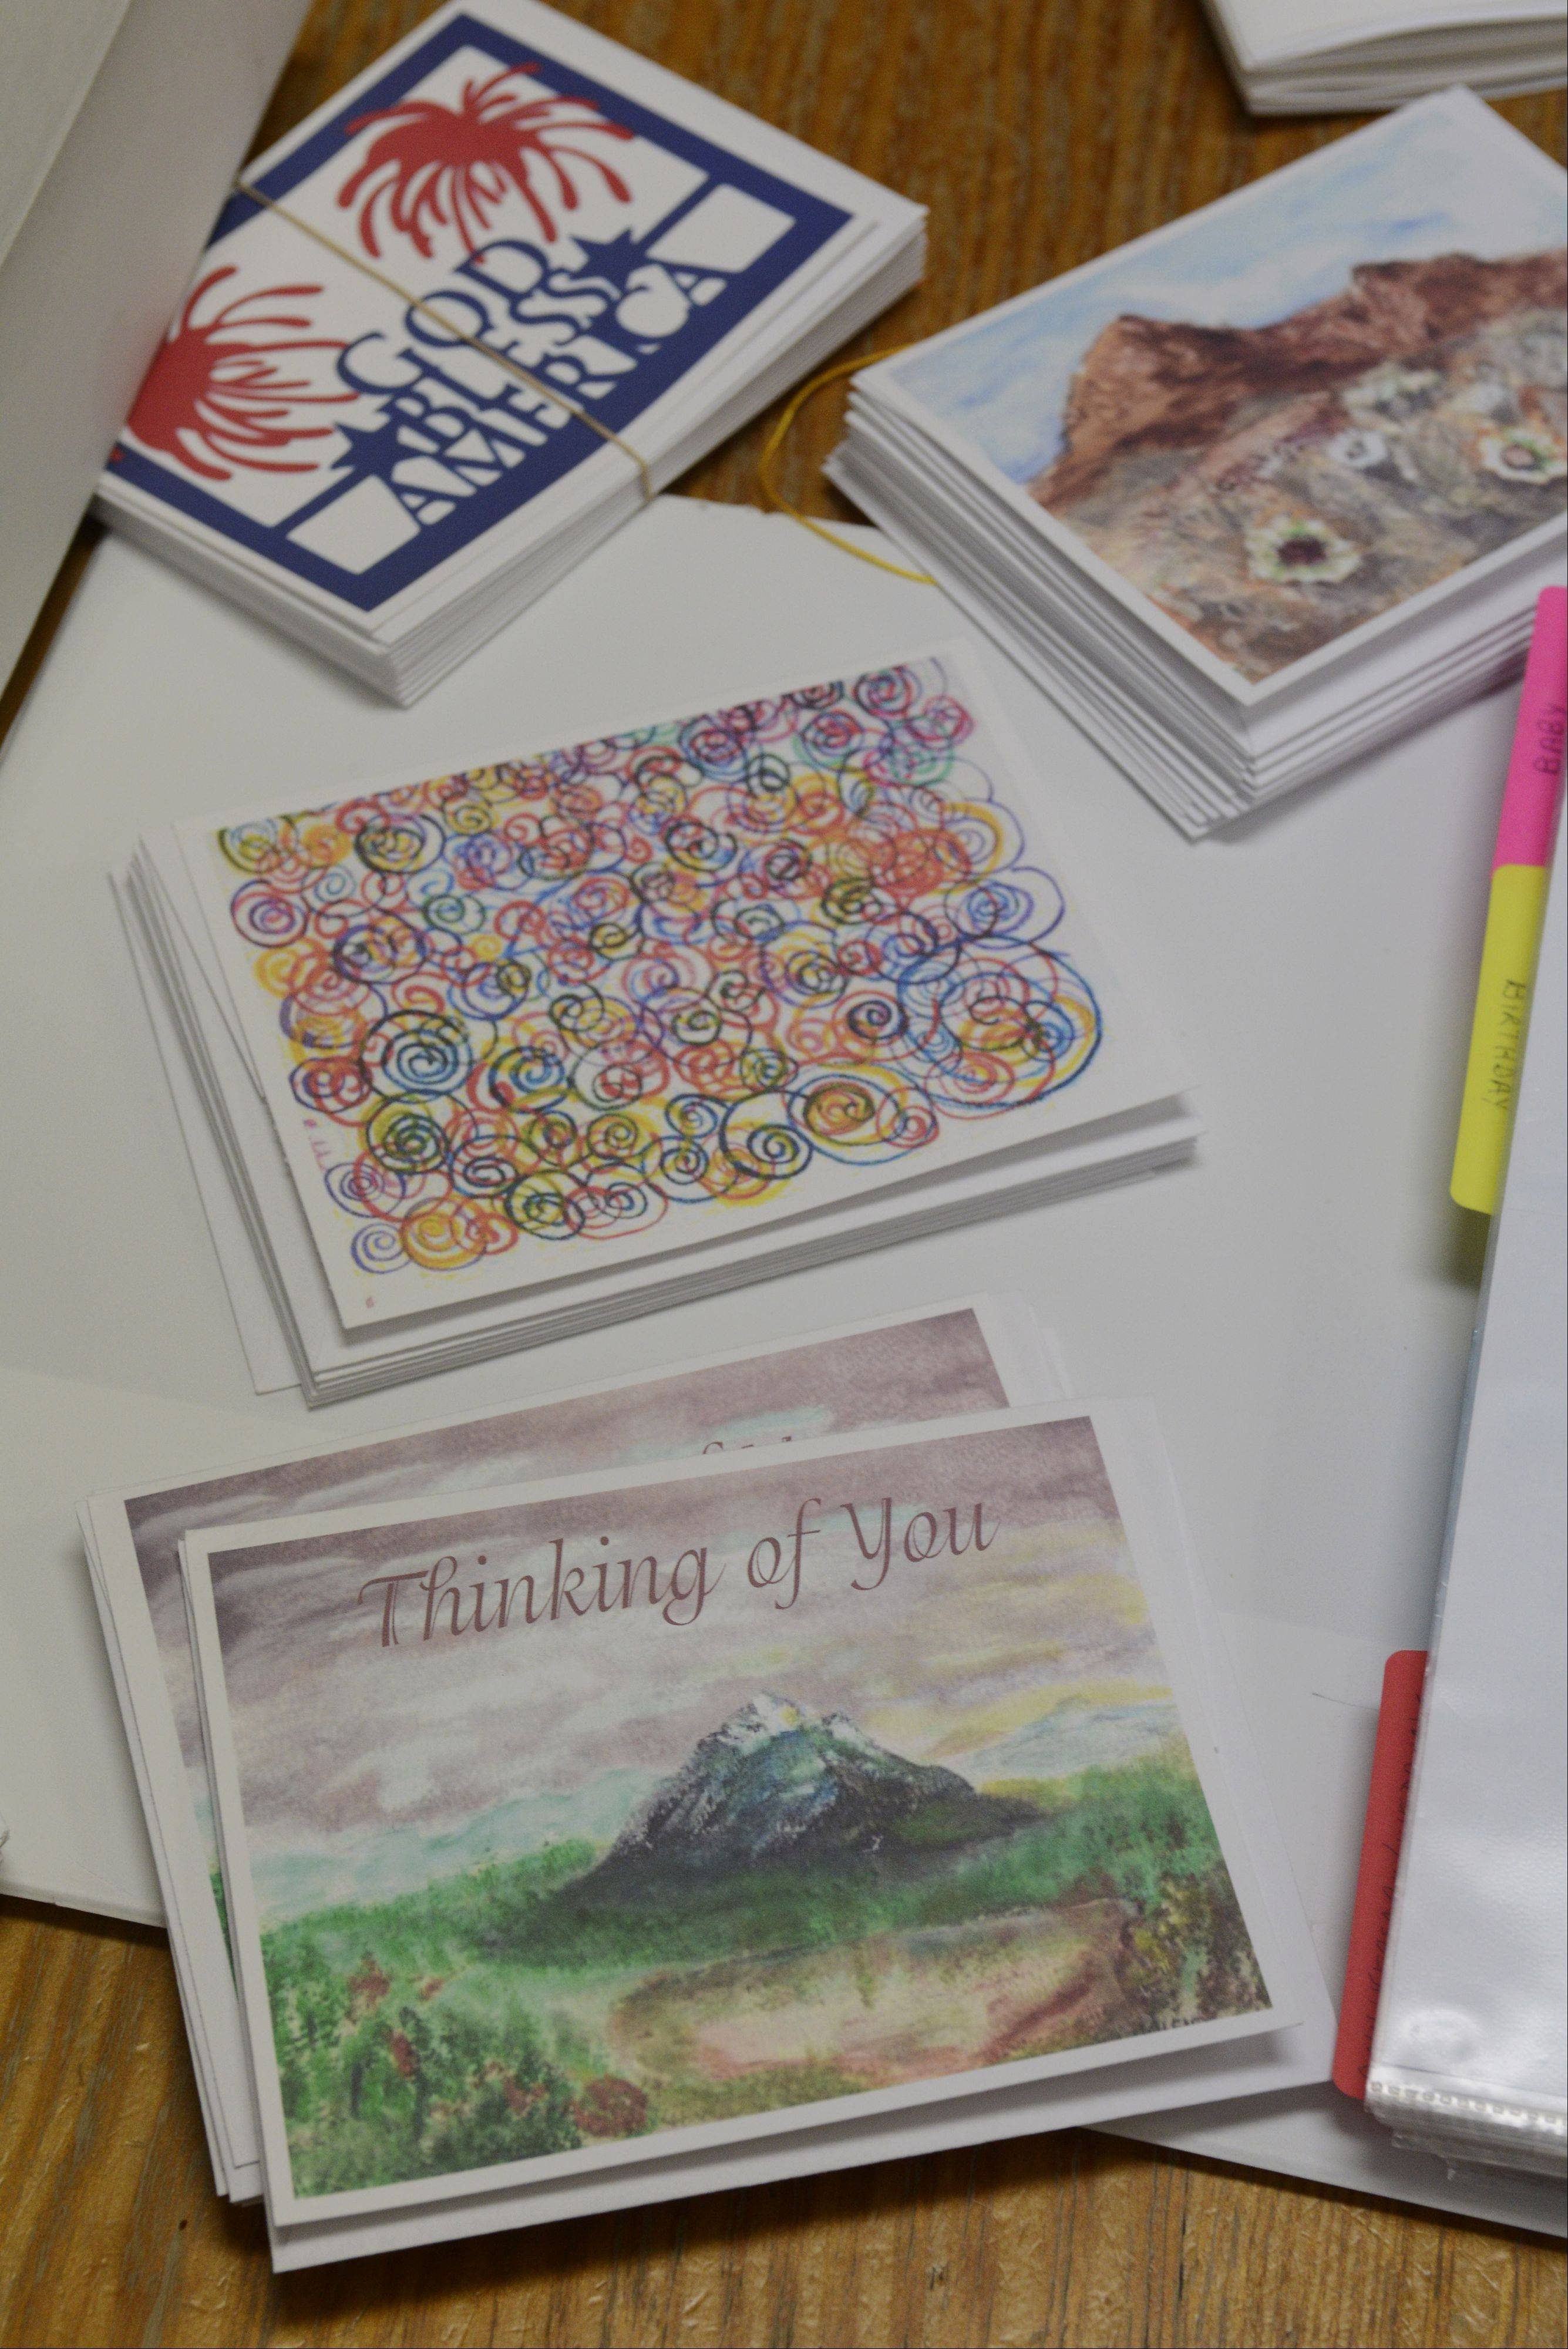 Sales of greeting cards made by people with mental illnesses help with the recovery process at the Kenneth Young Center in Elk Grove Village.